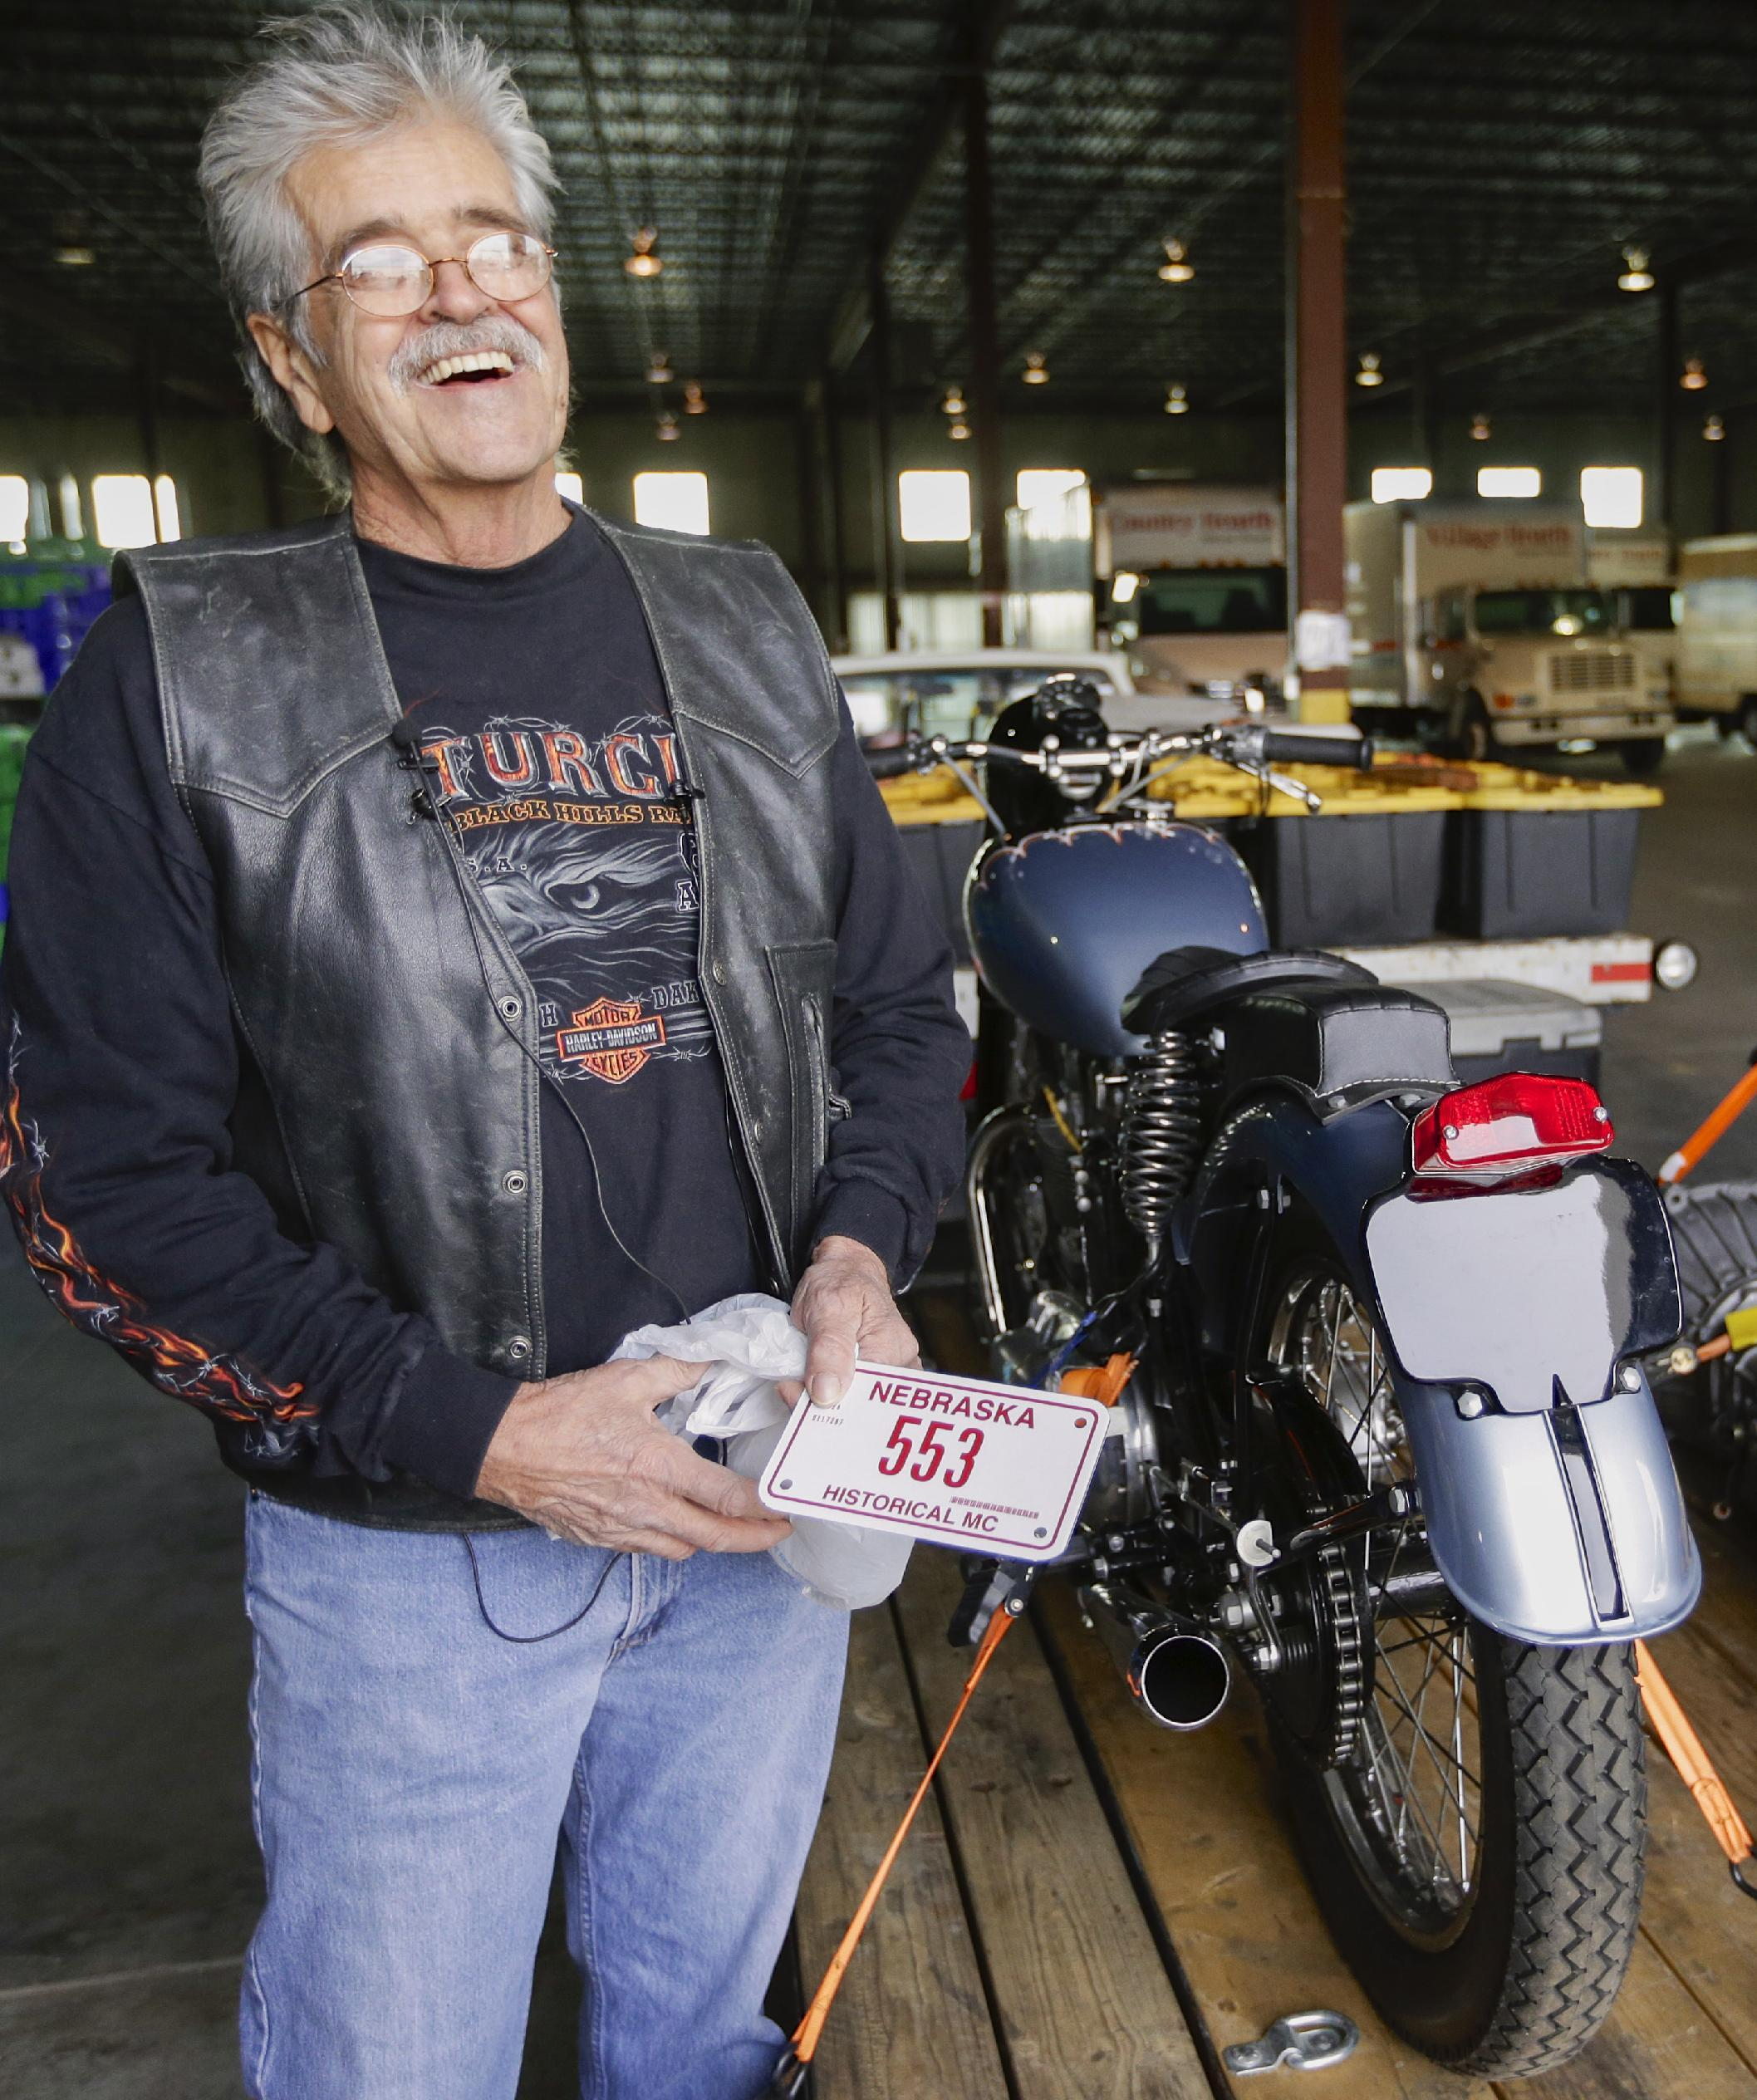 Donald DeVault, 73, smiles before trying to affix a new license plate to his motorcycle in Omaha, Neb., after it was returned to him on Wednesday, Nov. 20, 2013. It was the first time he had seen the bike since it was stolen 46 years ago. California authorities had recovered his 1953 Triumph Tiger 100 at the Port of Los Angeles where it was about to be shipped to Japan. (AP Photo/Nati Harnik)